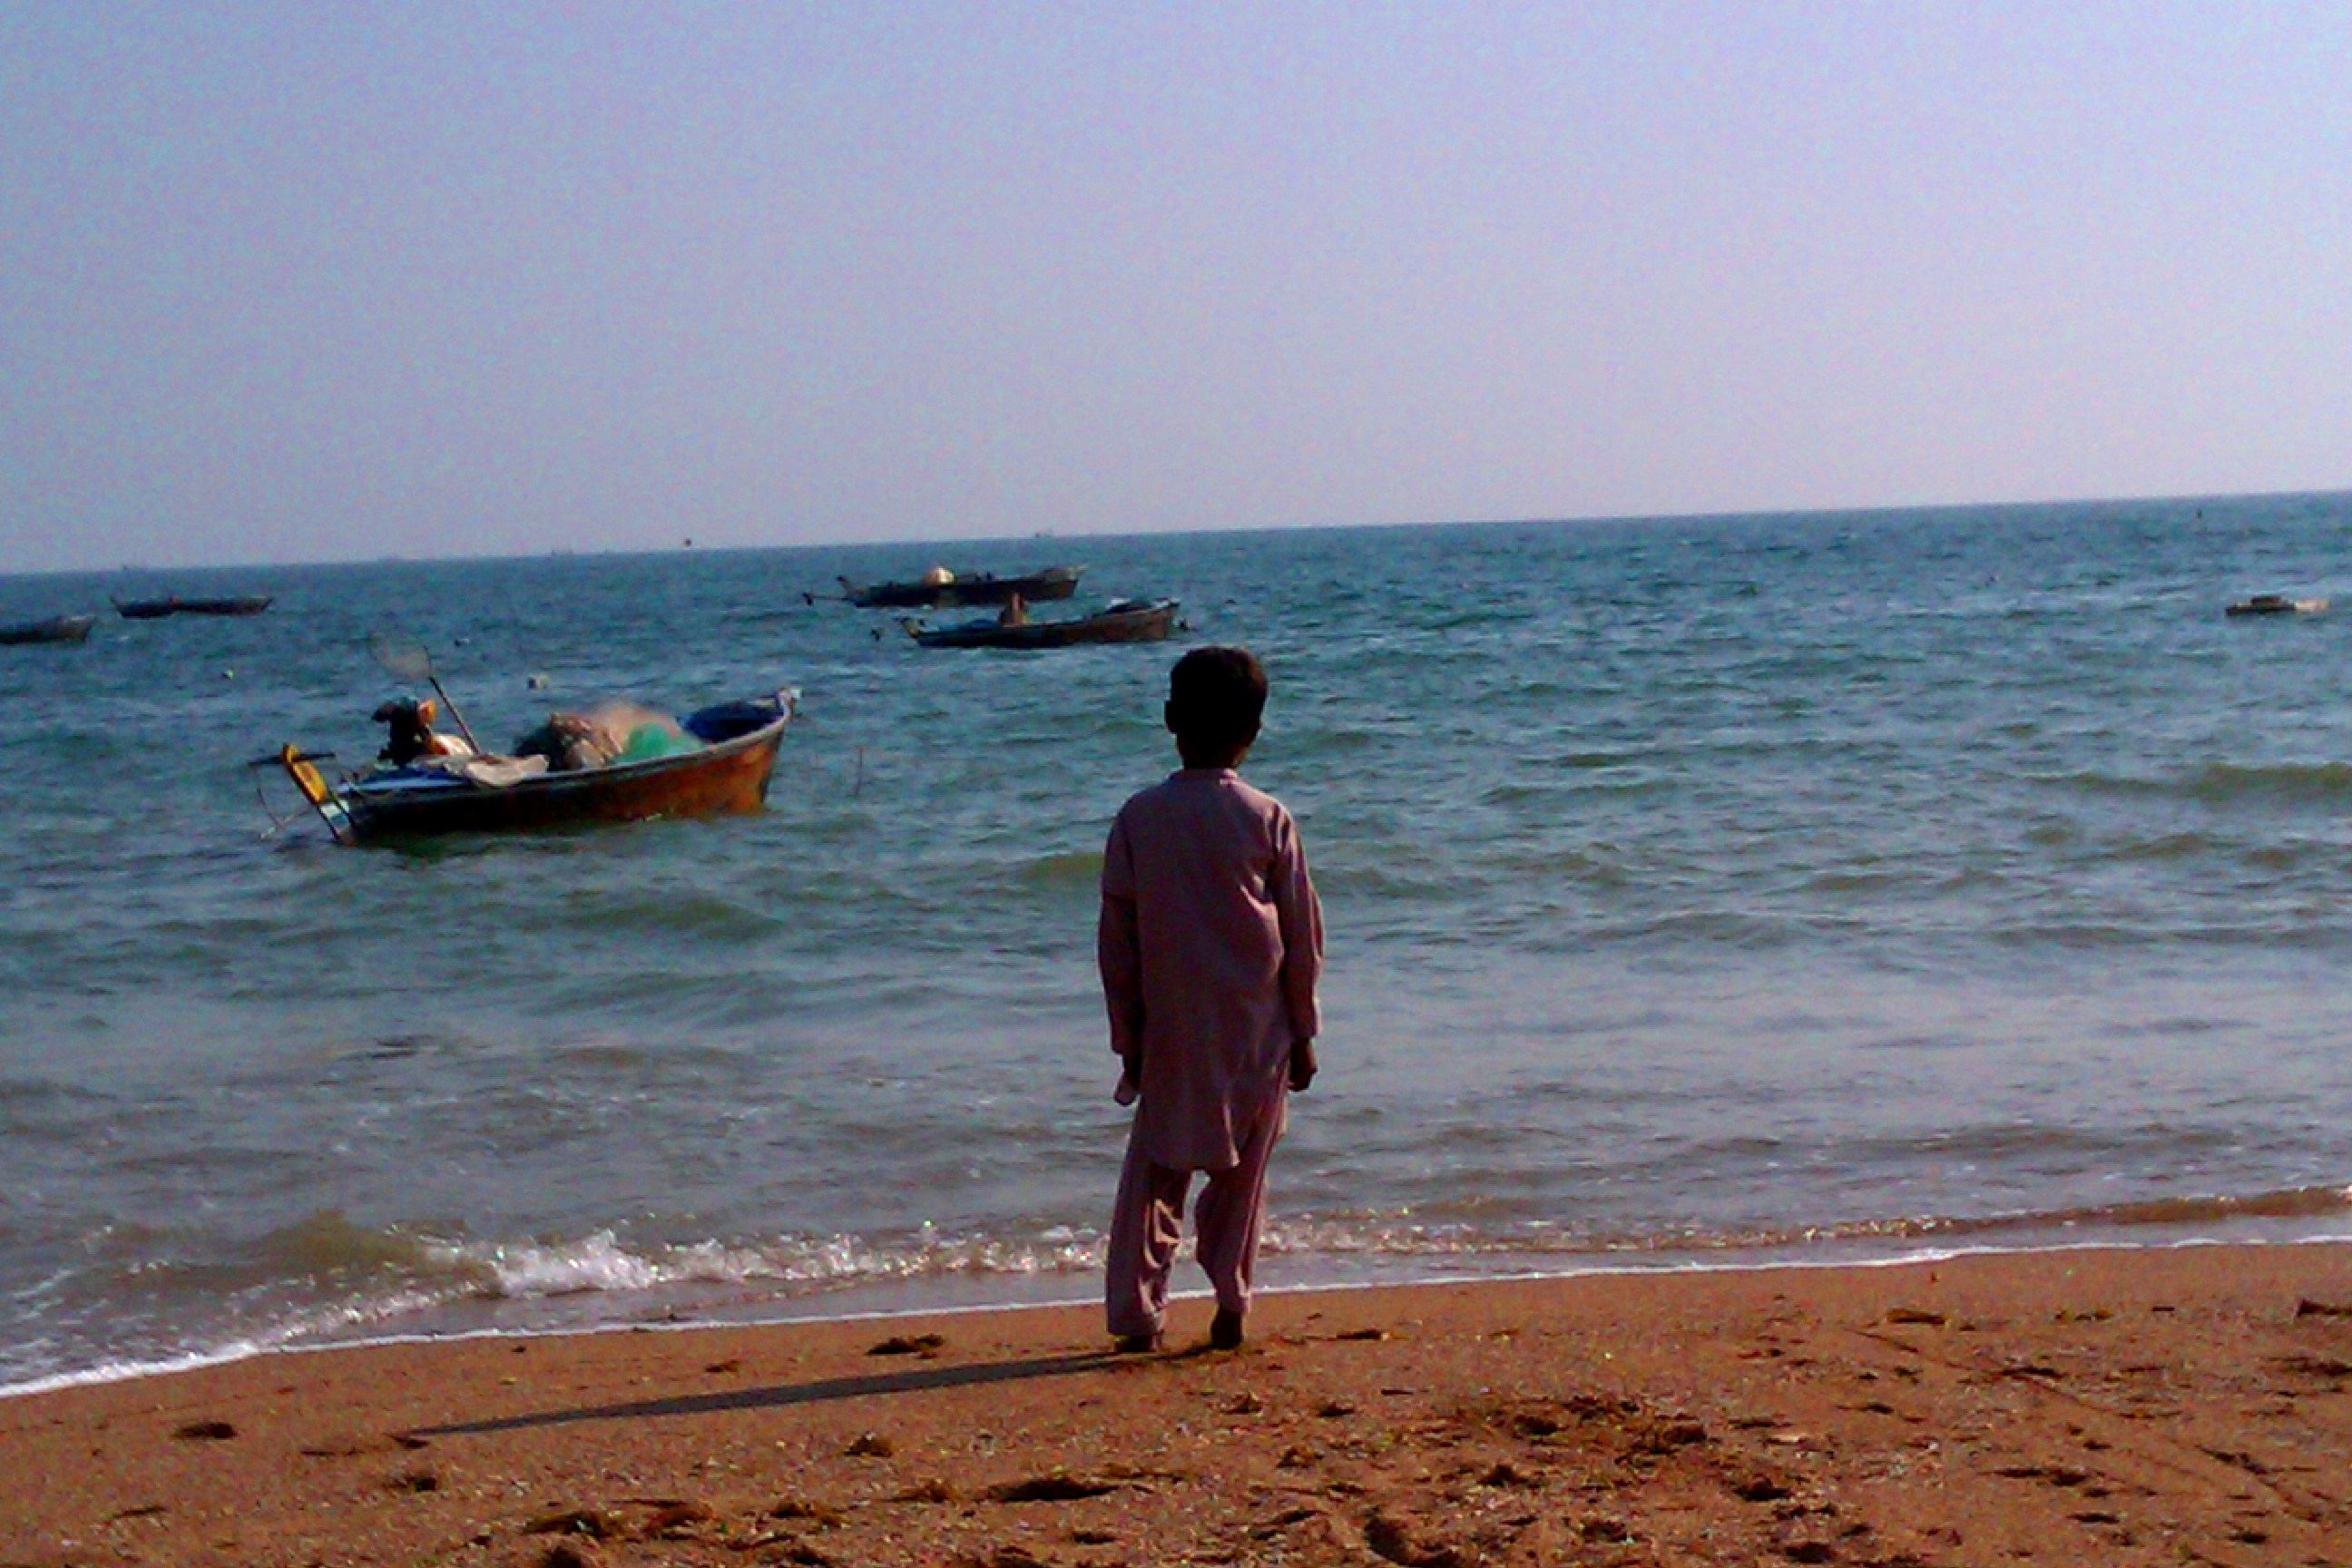 Fisherboy looks to the distant boats. Photograph by Aown Shahzad, Karachi, Pakistan.